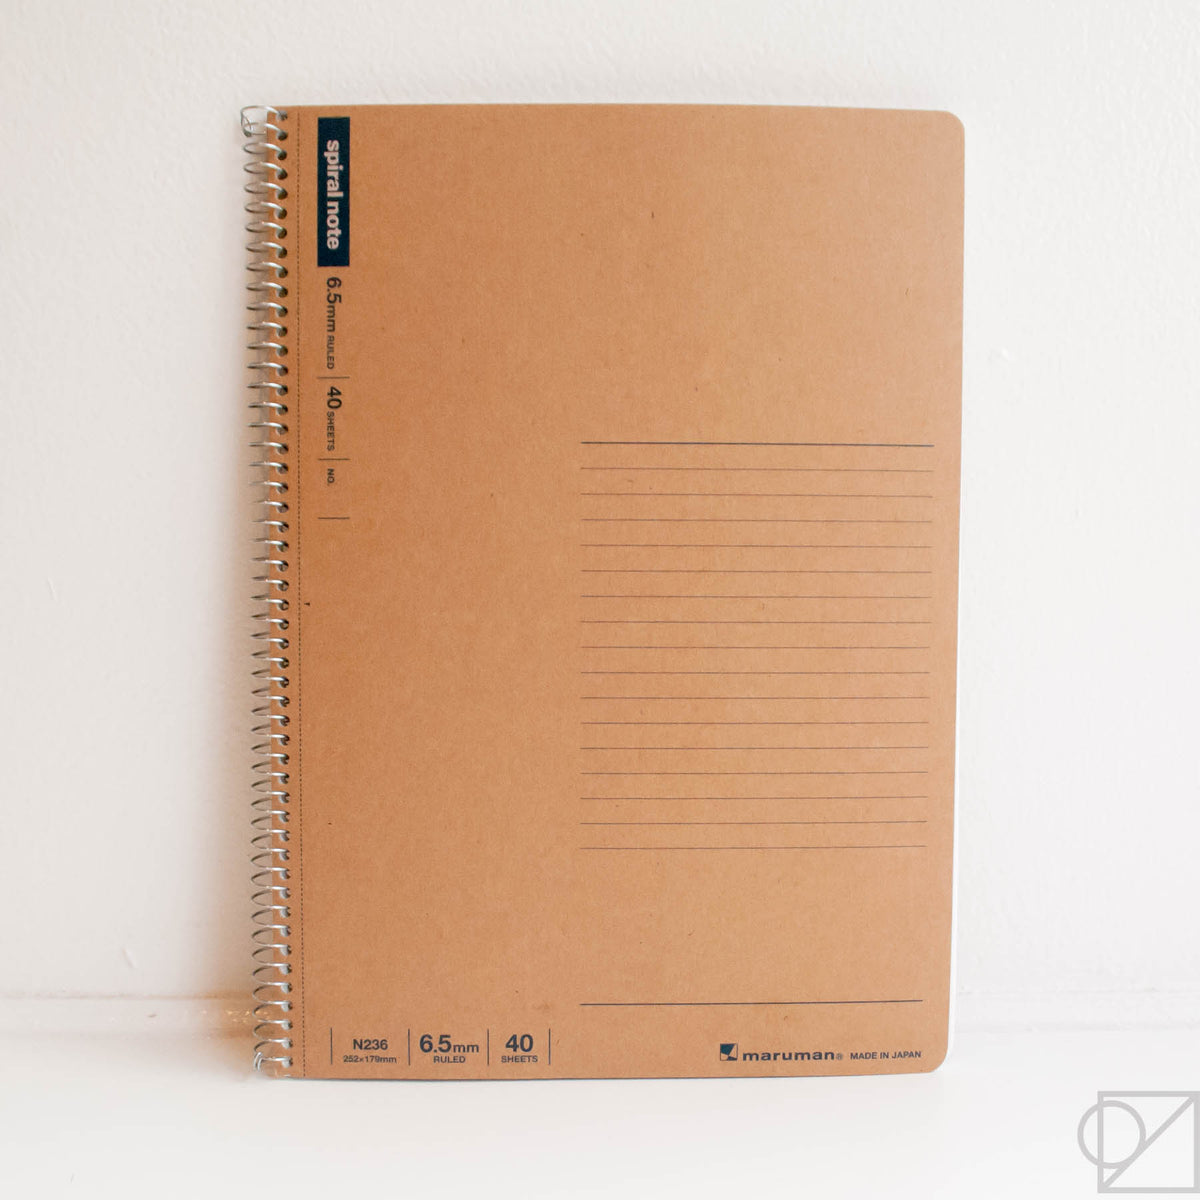 Basic Spiral Ring Notebook 6.5mm College Line Rule